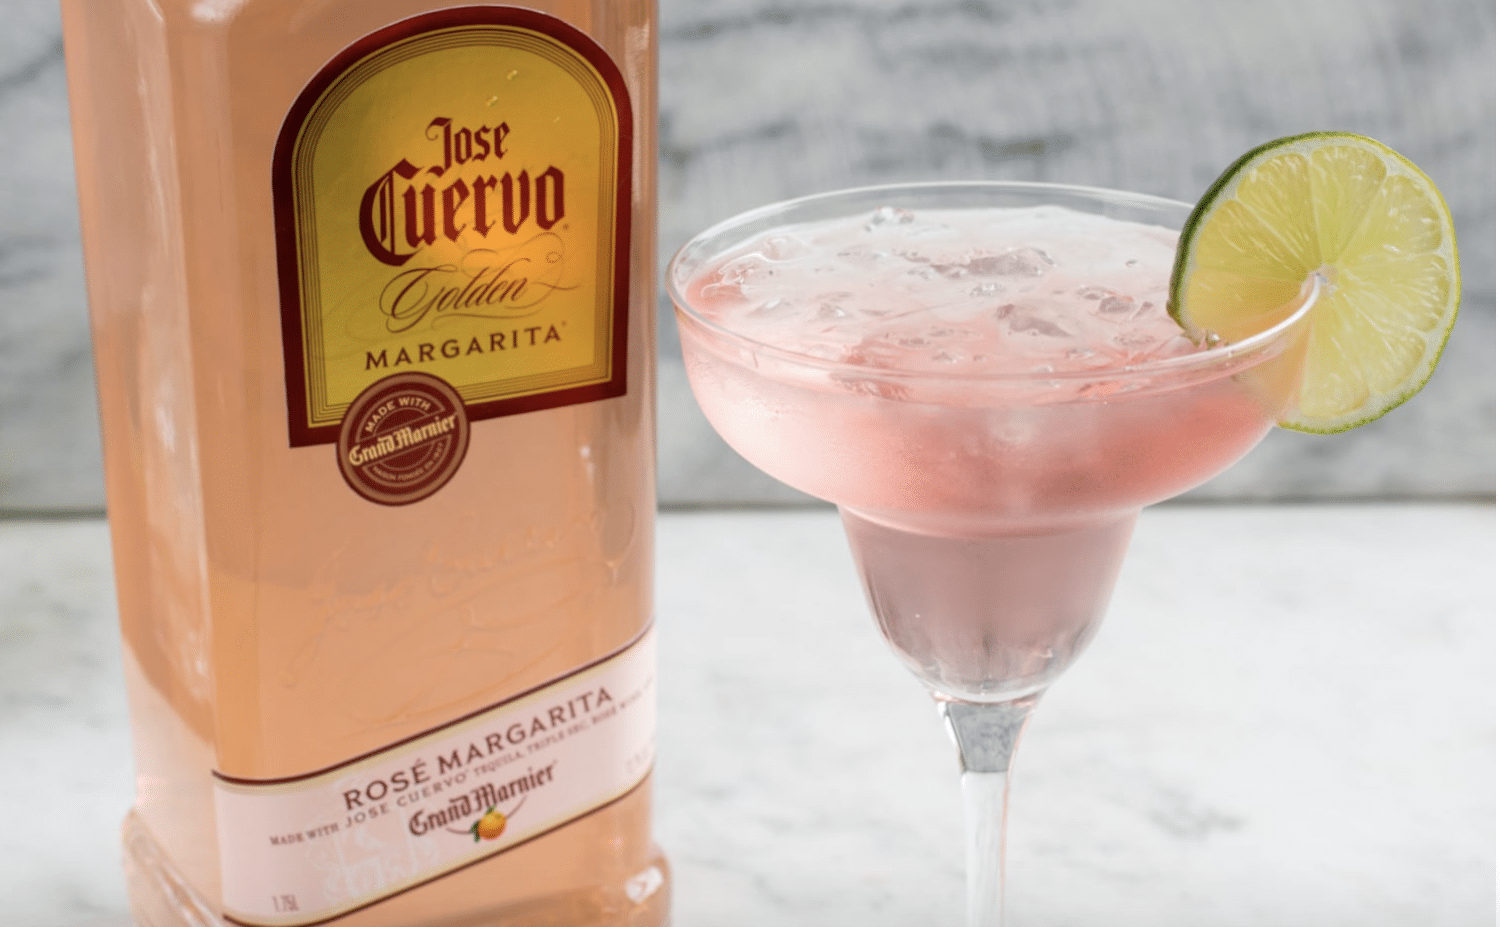 Jose Cuervo Debuts Golden Rose Margarita Mix photo